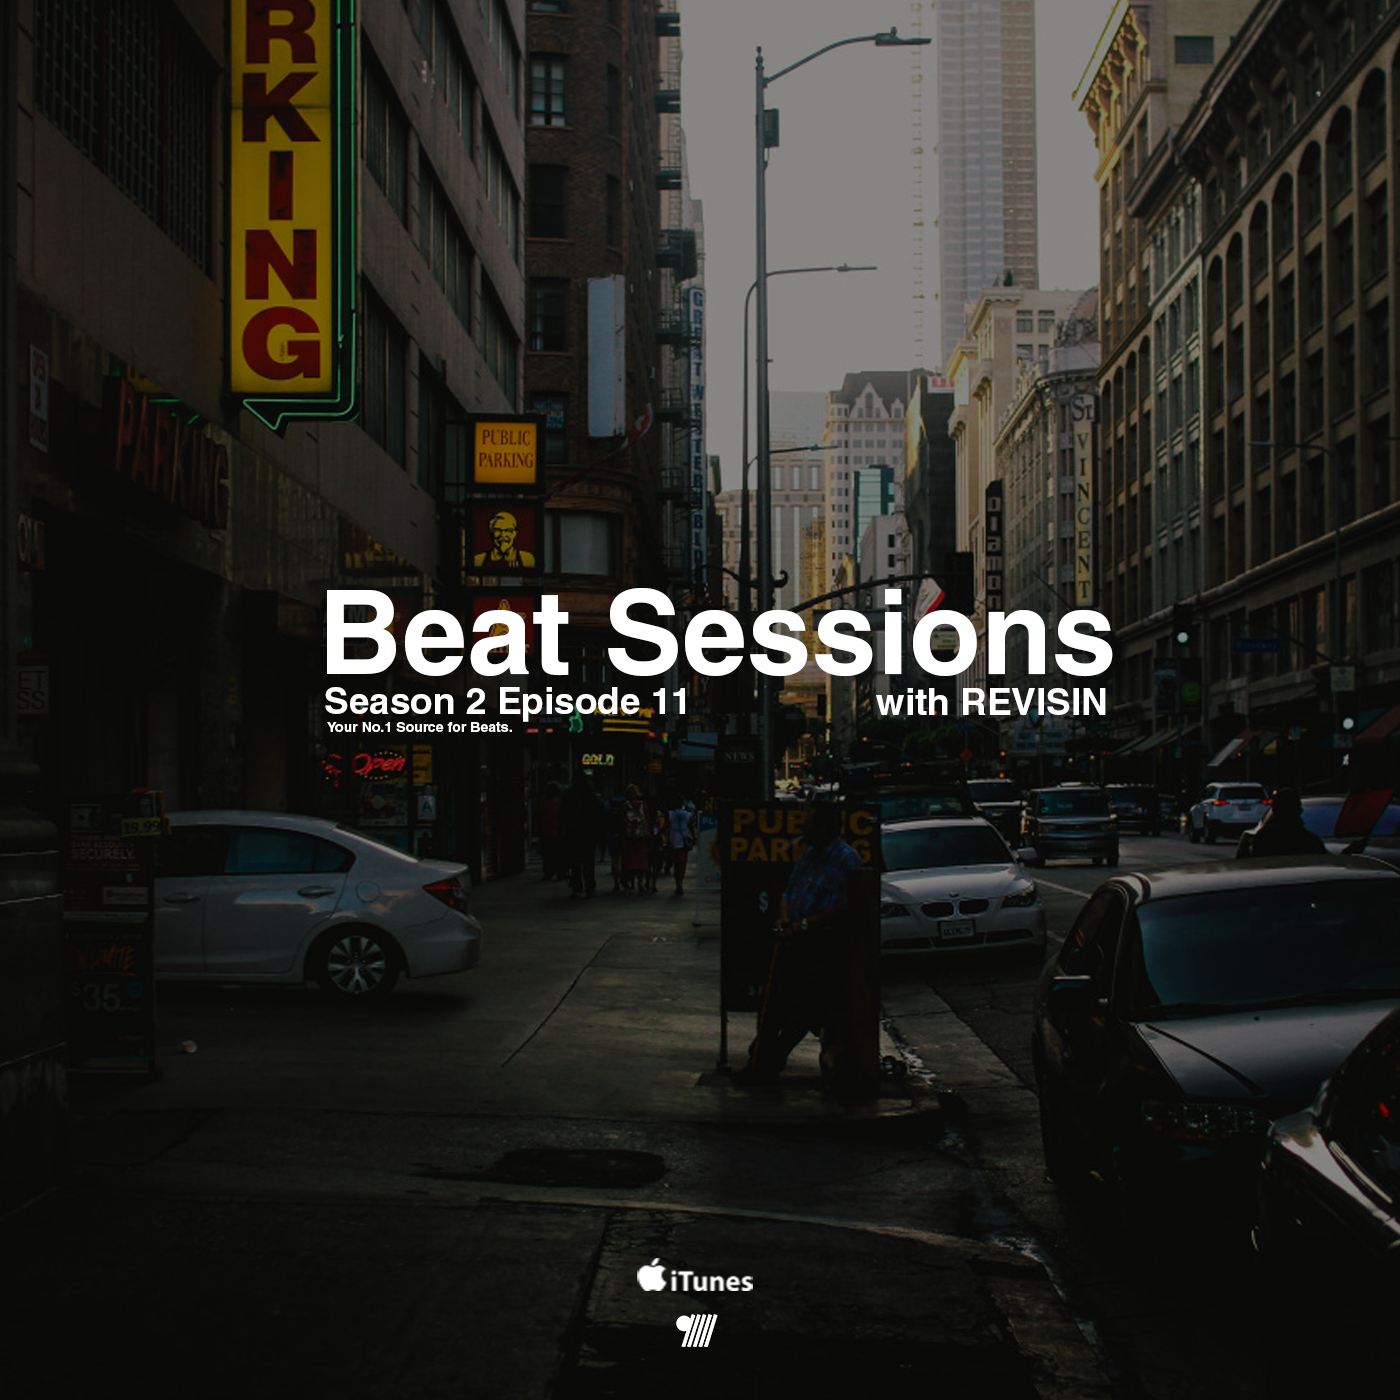 Beat Sessions - Season 2 Episode 11